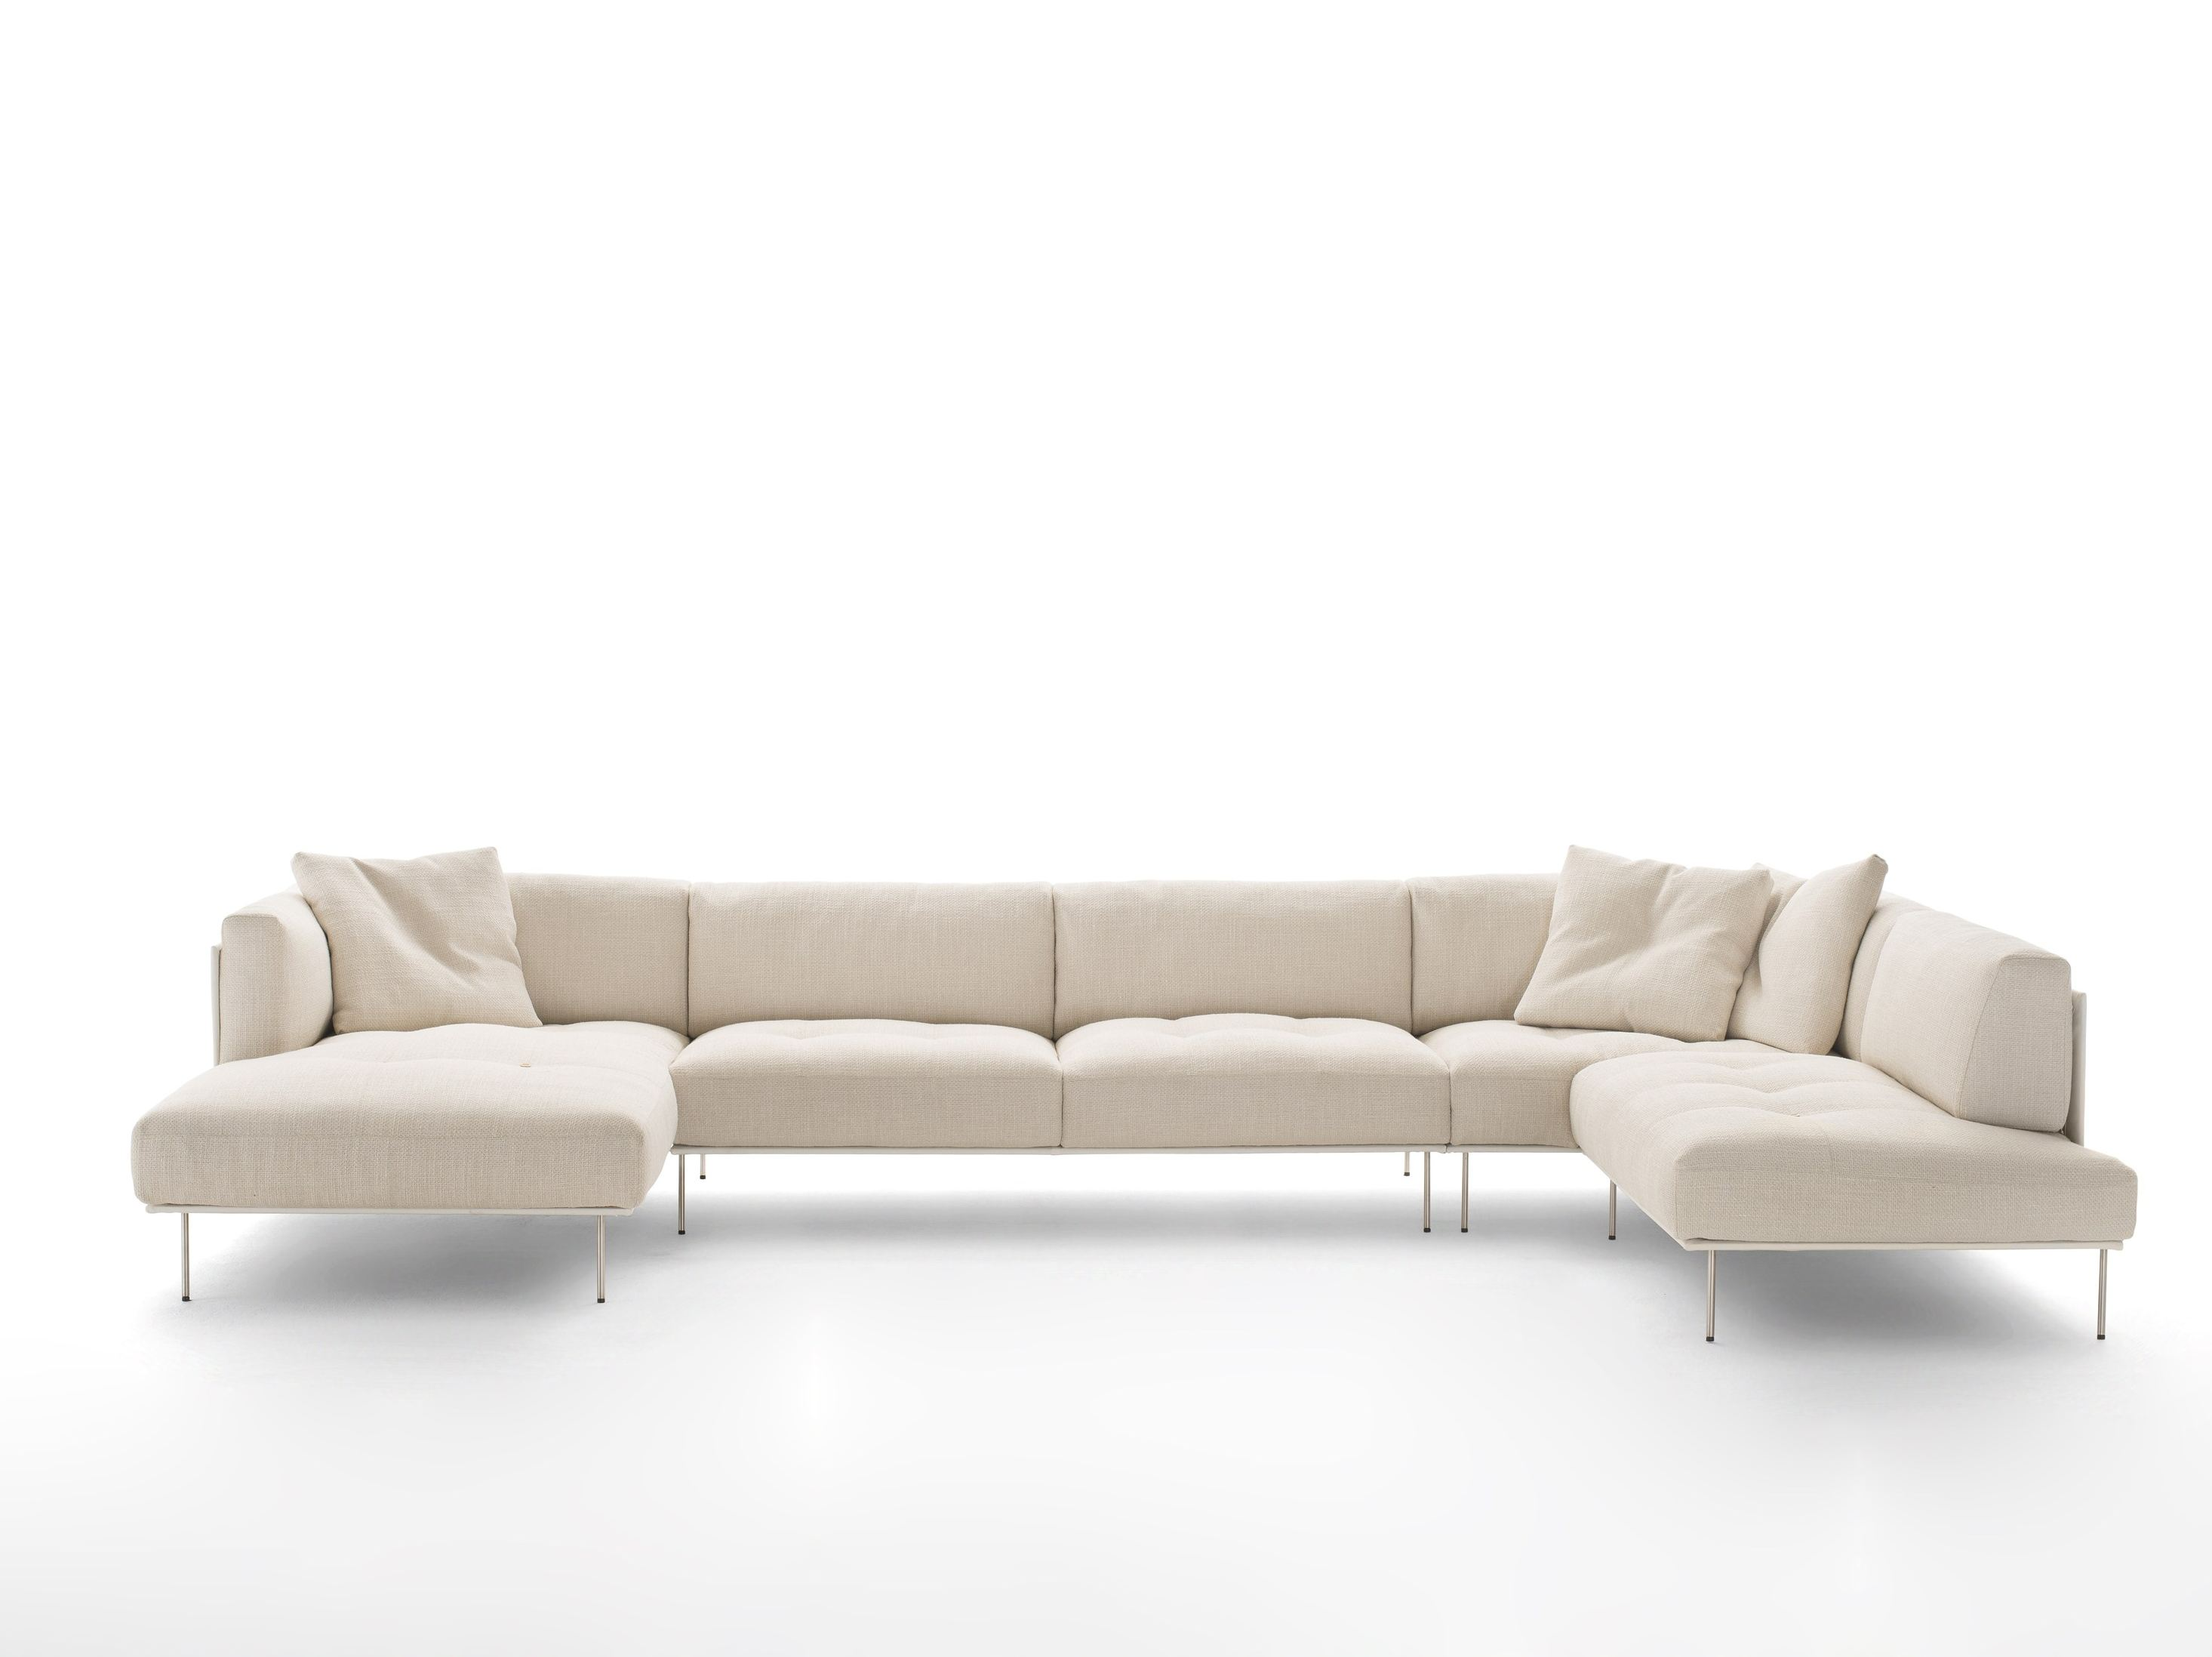 Curved Fabric Sofa With Removable Cover ROD BEAN By Living Divani Design  Piero Lissoni